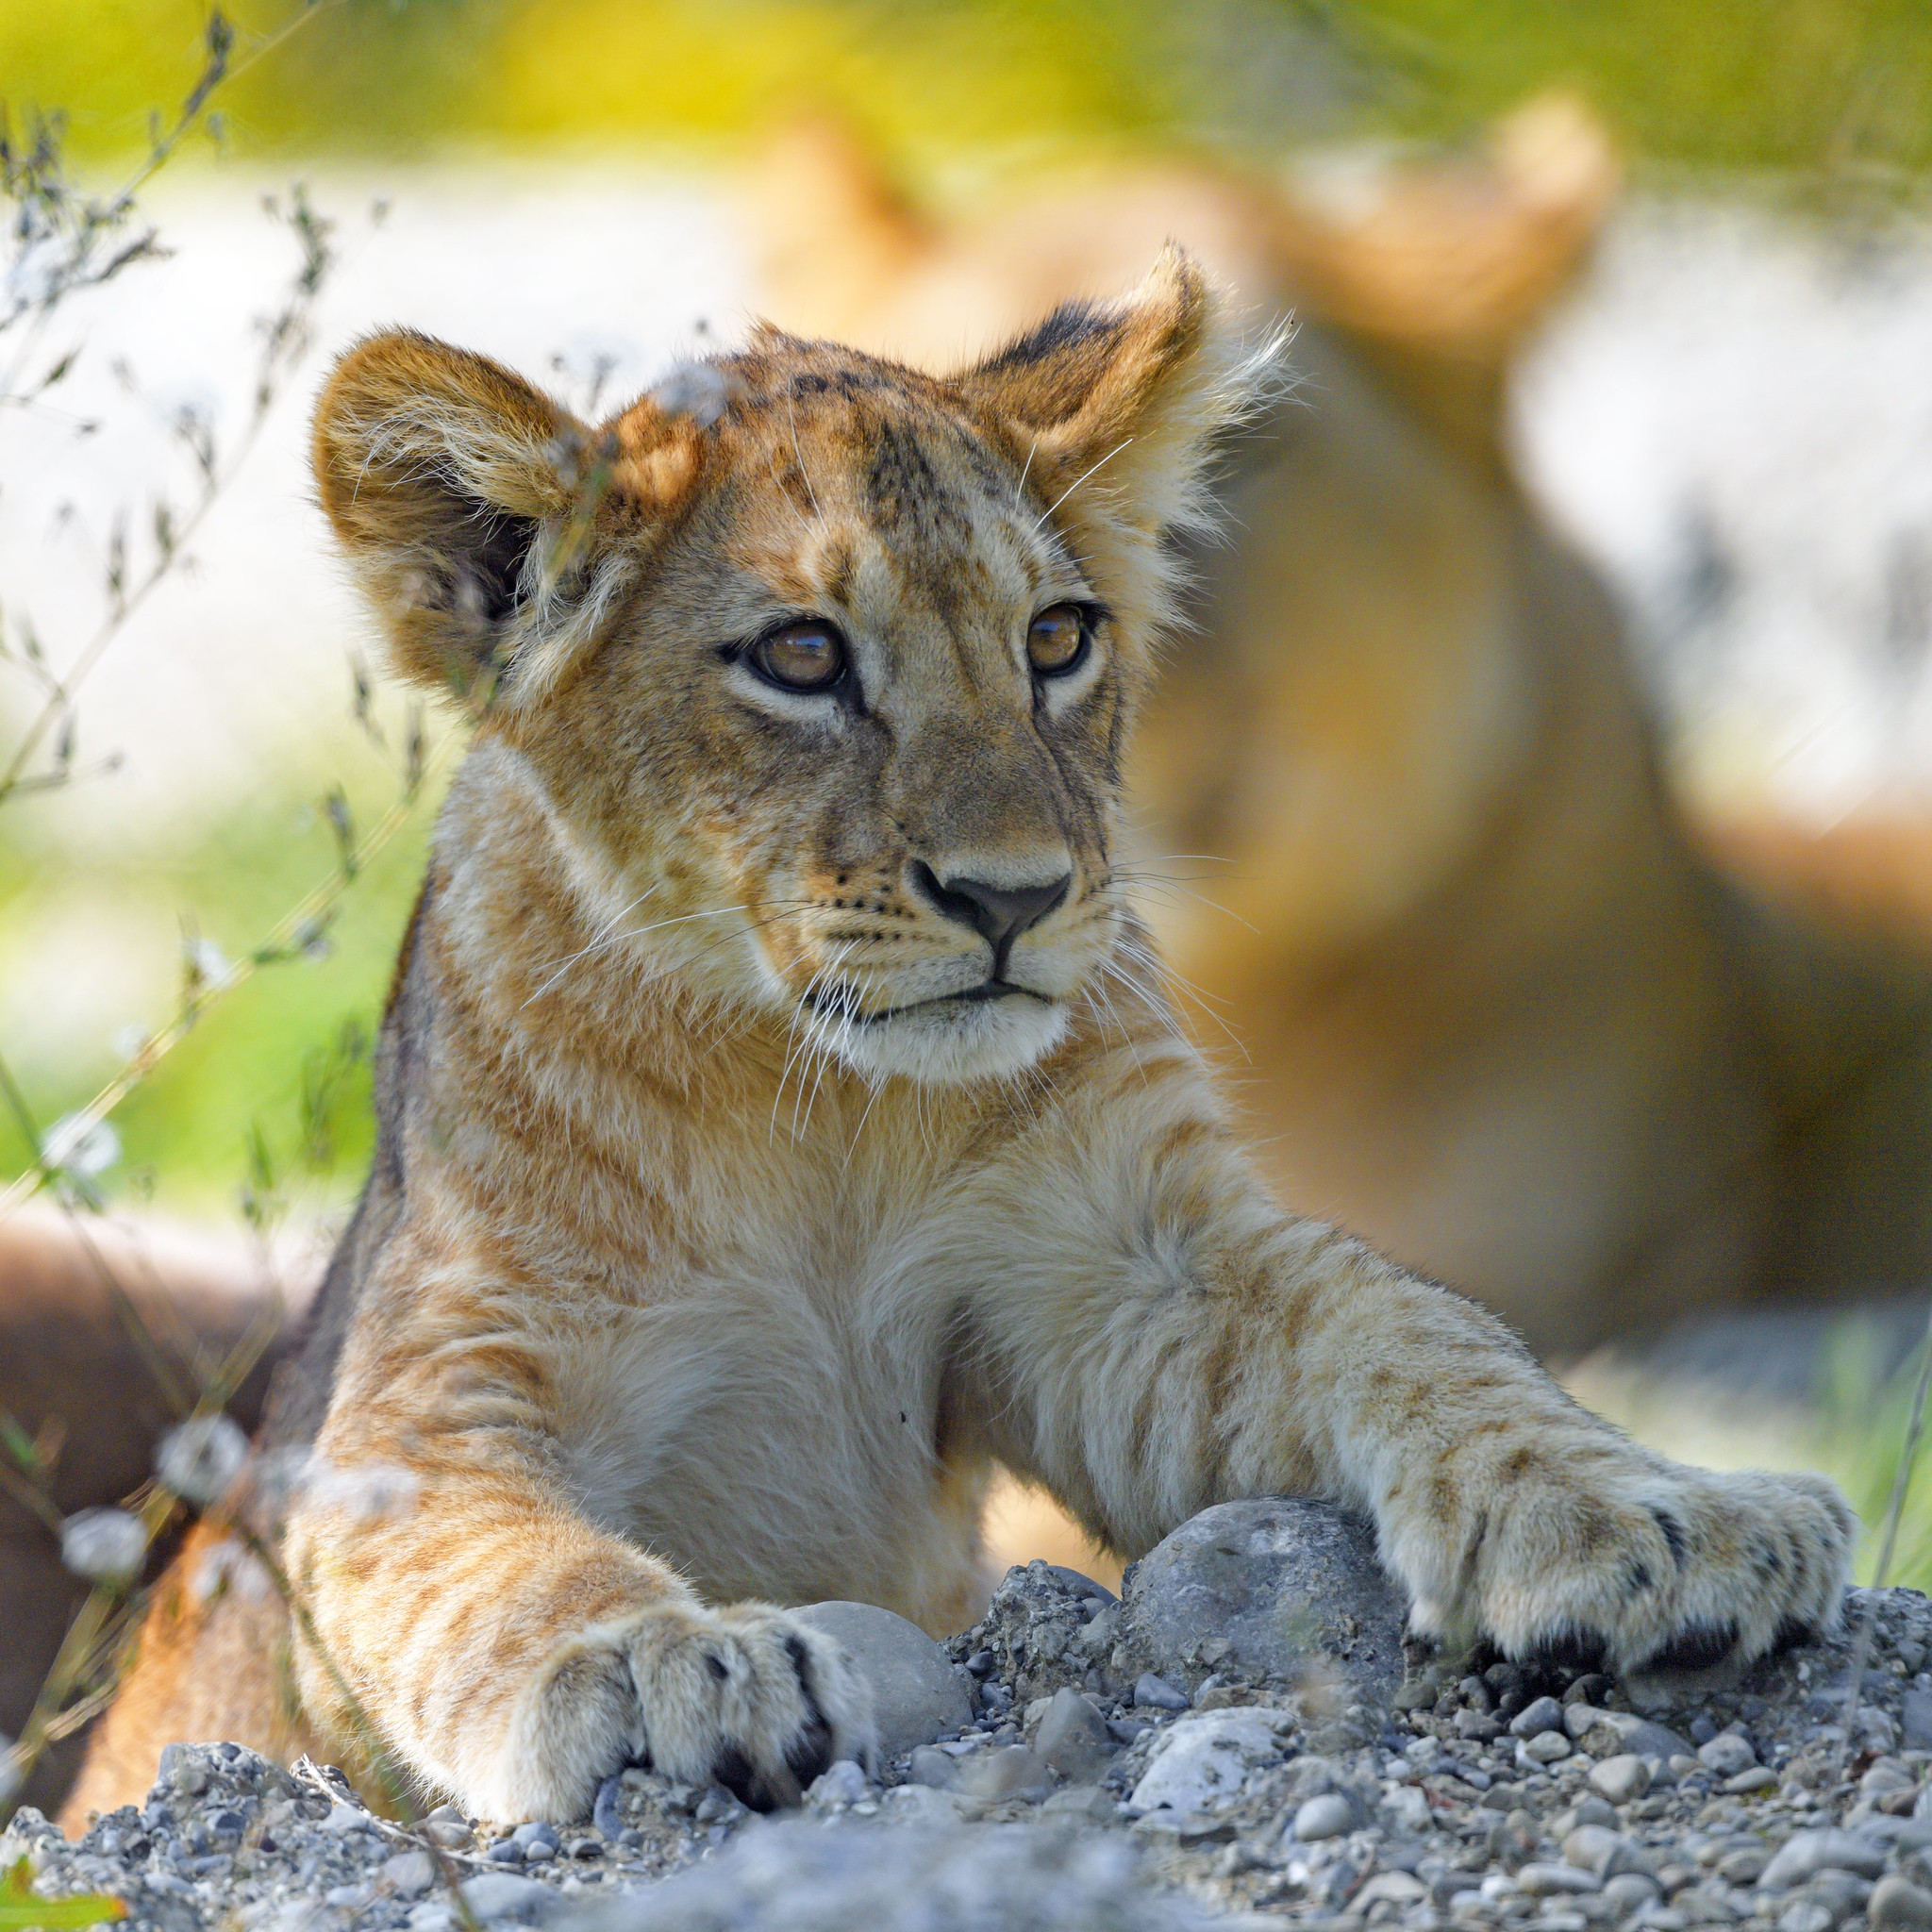 143694 download wallpaper Animals, Lion Cub, Lion, Predator, Young, Joey, Sight, Opinion screensavers and pictures for free